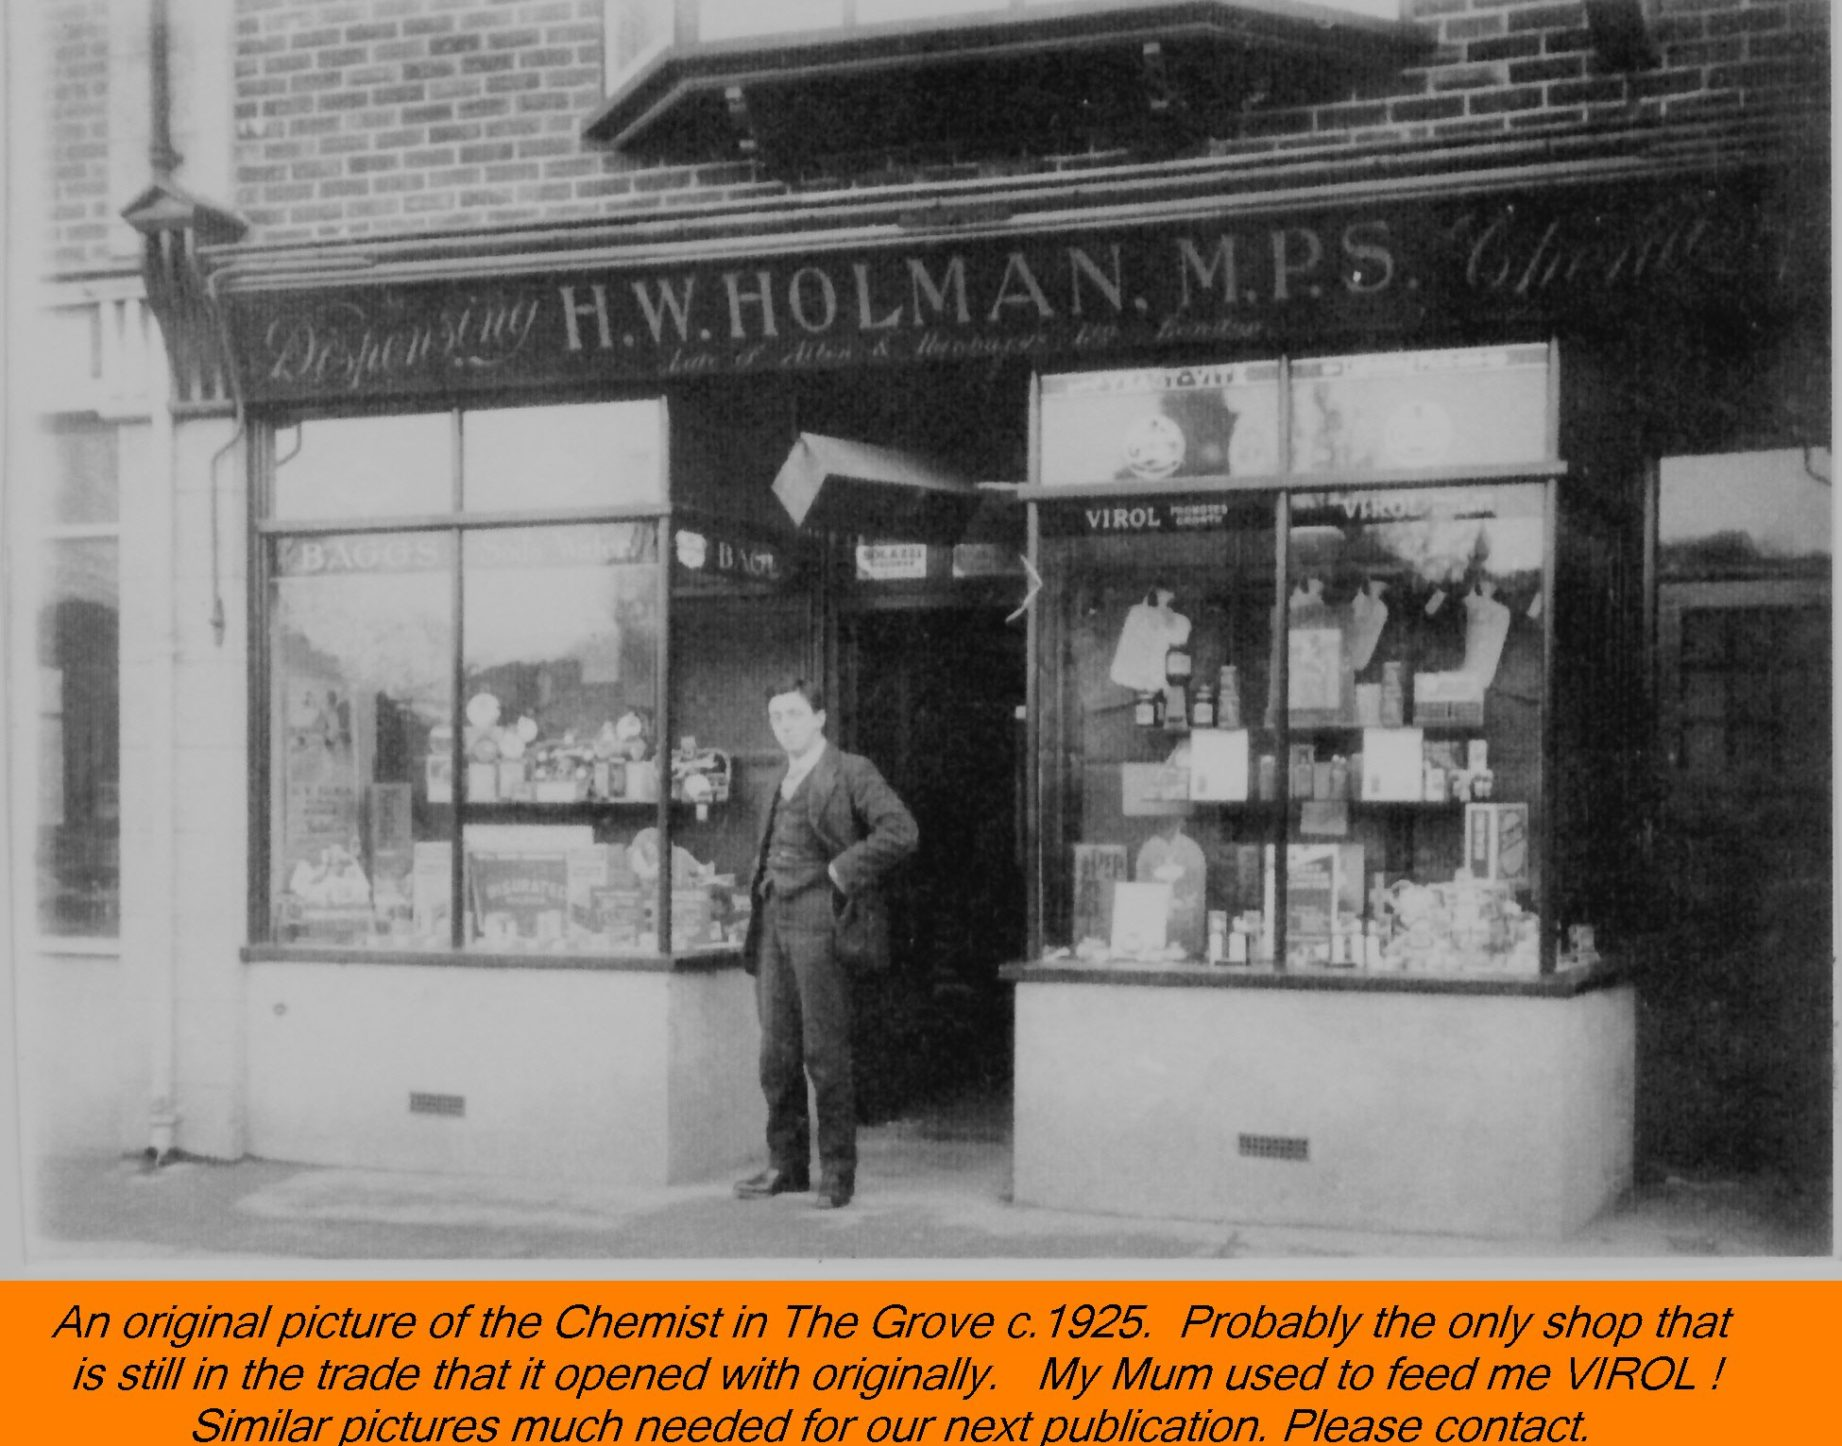 WESTBOURNE HISTORY PHOTO, GROVE, SHOPS, CHEMIST, VIROL, HOLMAN